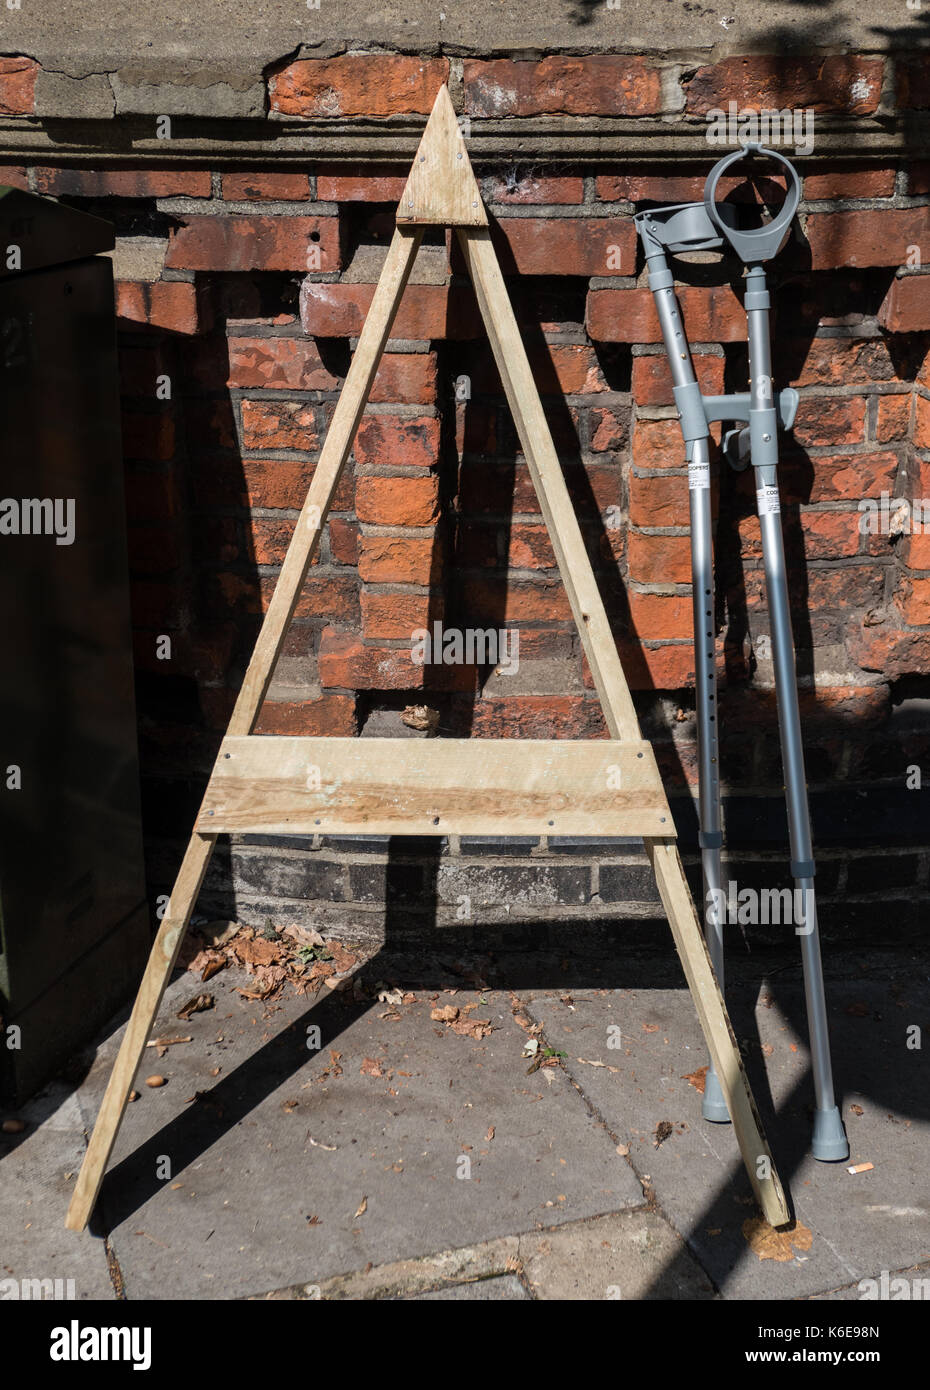 A wooden template and two abandoned crutches - Stock Image